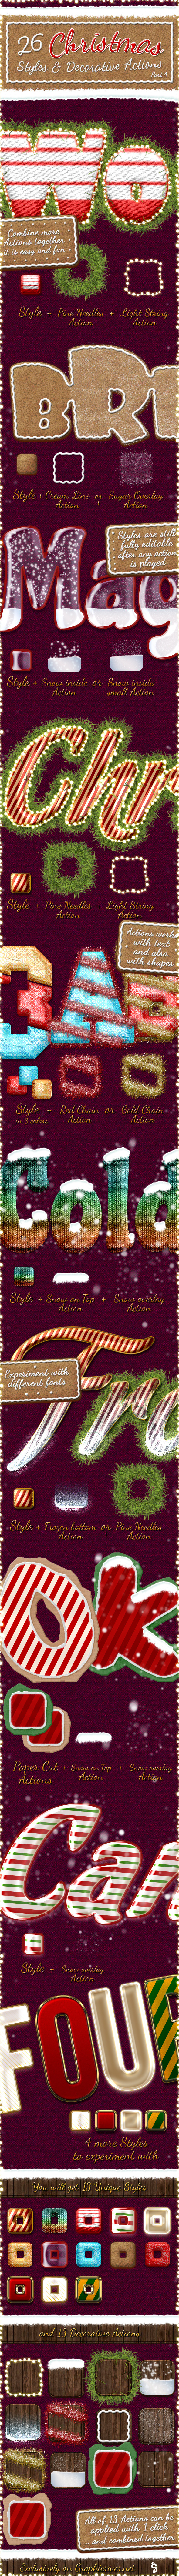 Christmas And Winter Styles And Actions 4 - Text Effects Actions